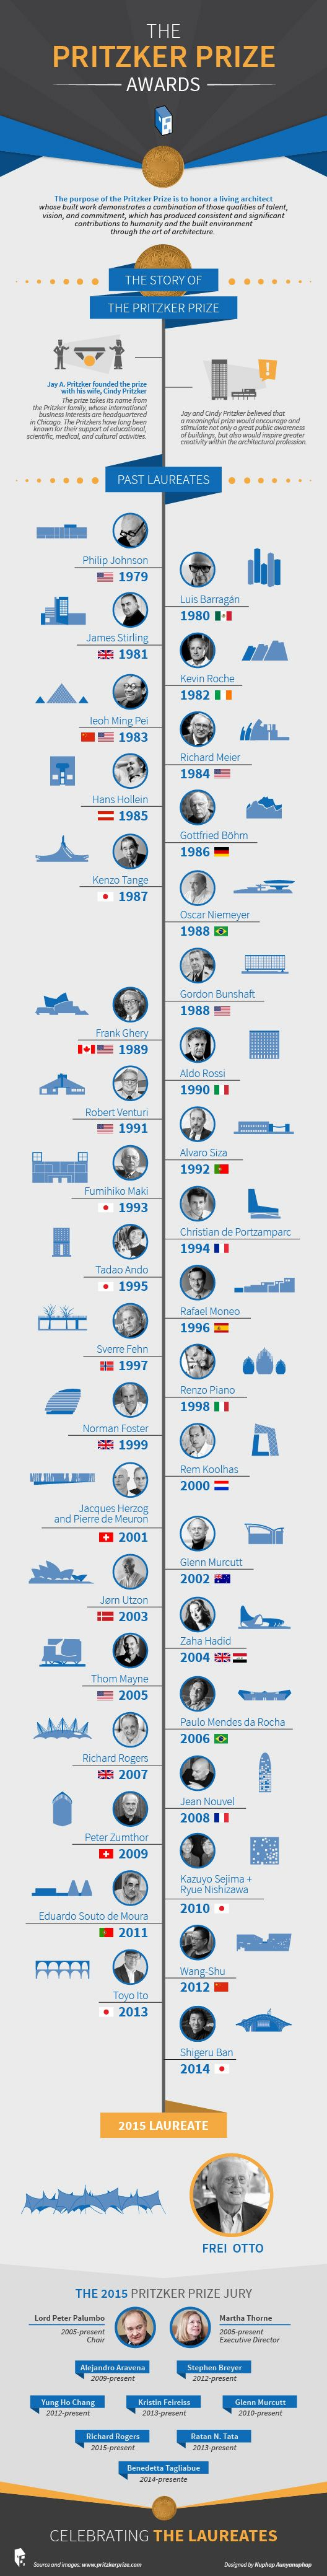 Infographic: The Pritzker Prize 1979 – 2015 | ArchDaily